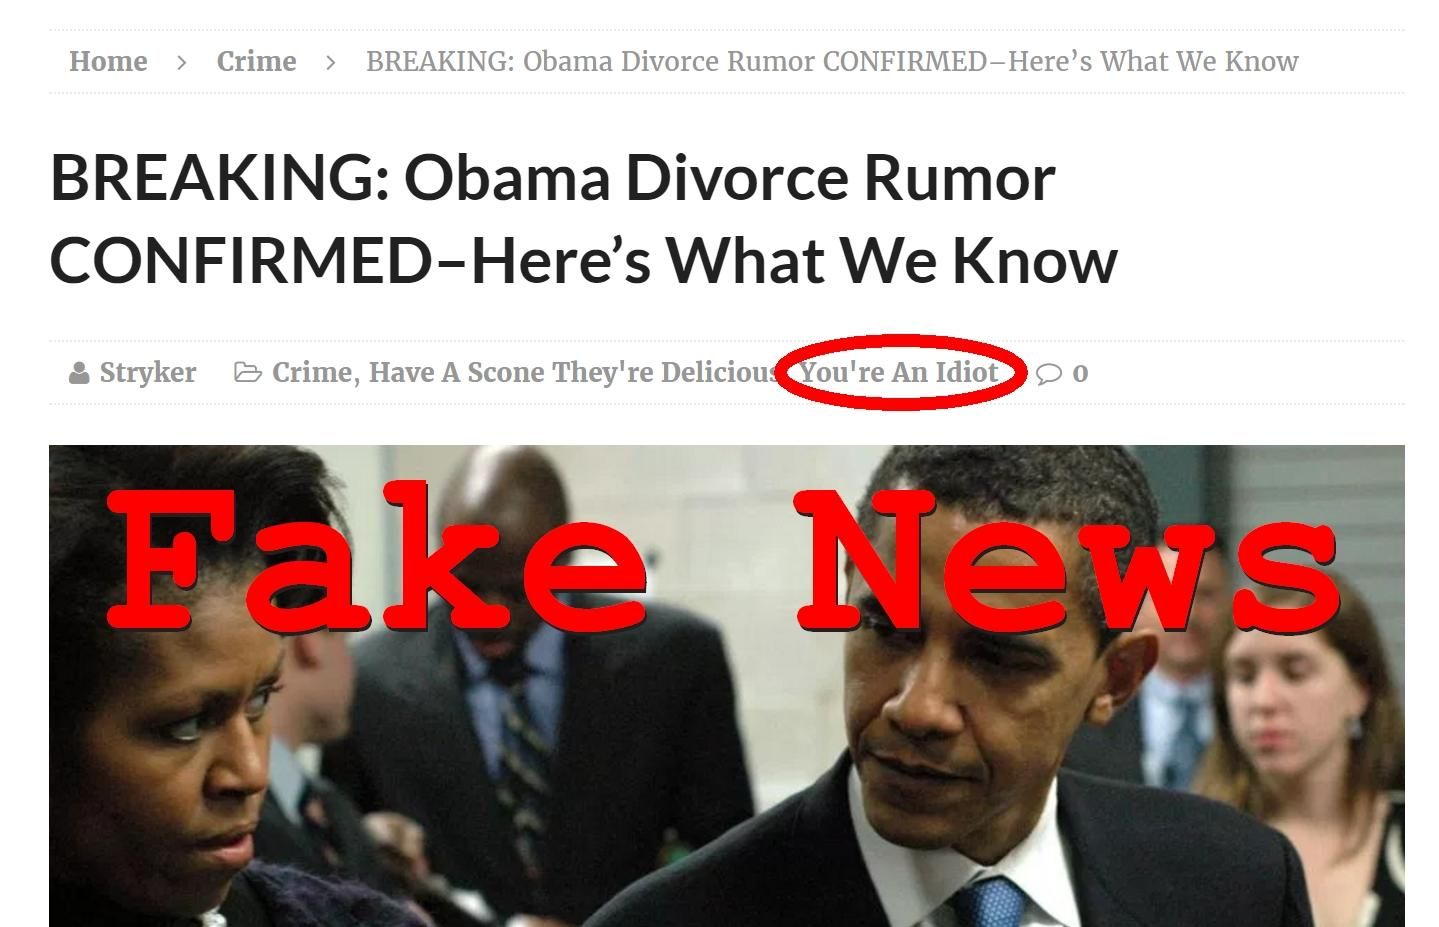 Fake News: Obama Divorce Rumor NOT Confirmed